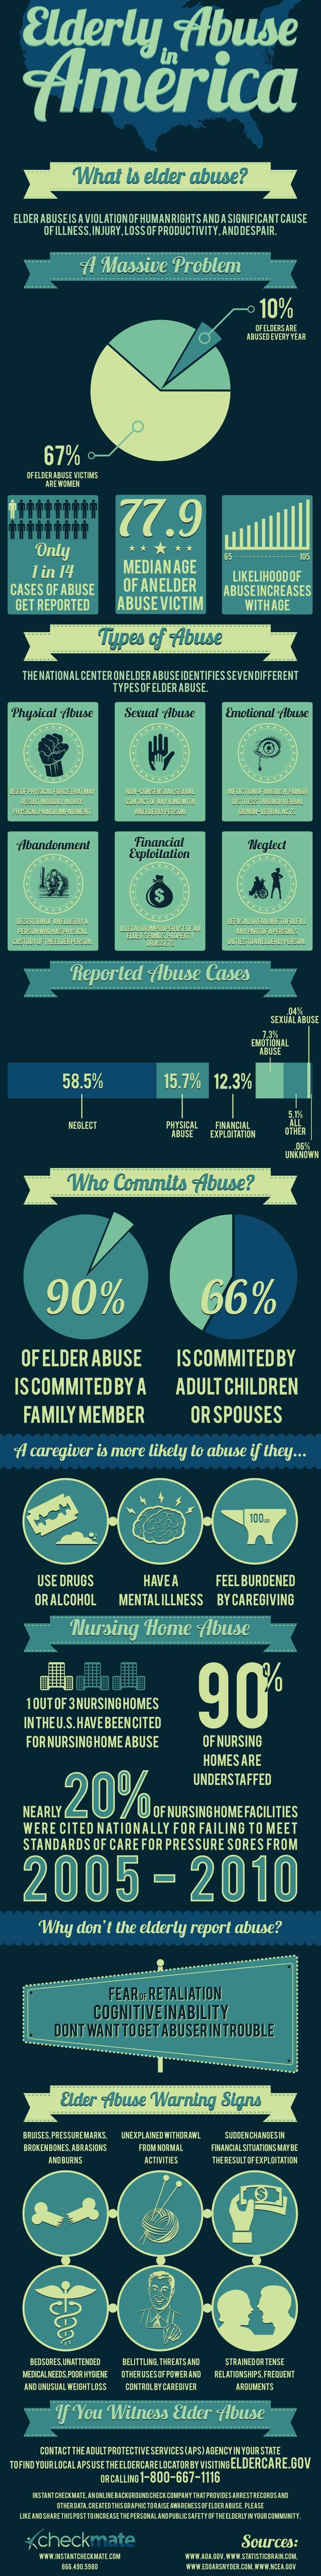 Instant Checkmate has created an infographic on elder abuse in America to help raise awareness of this crime. Help us stop elder abuse in America!  http://blog.instantcheckmate.com/elderly-abuse-in-america/